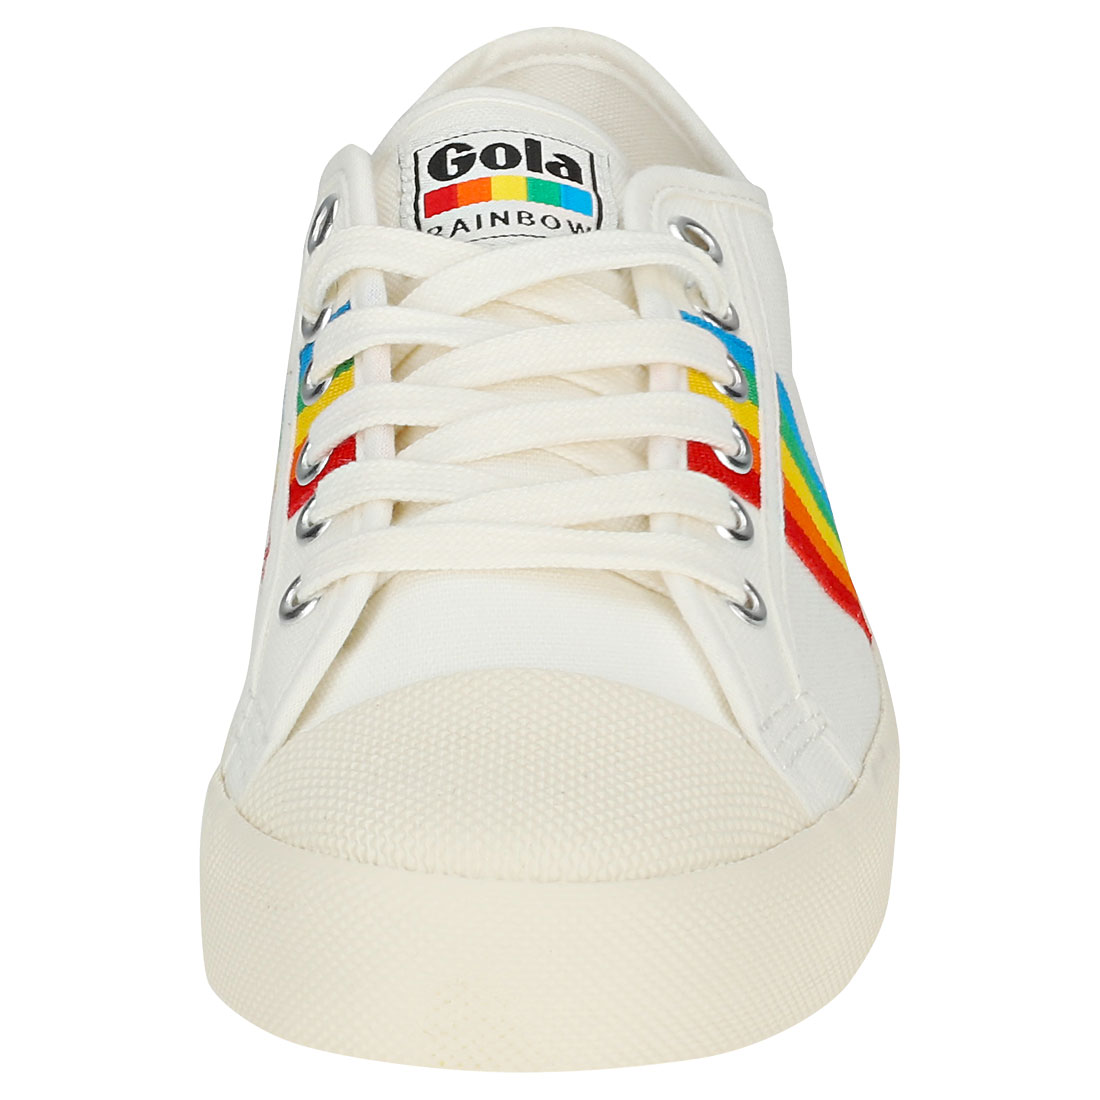 Gola Coaster Rainbow - Damenschuhe Off Weiß Multicolour Canvas Trainers - Rainbow 41 EU 62ffe8